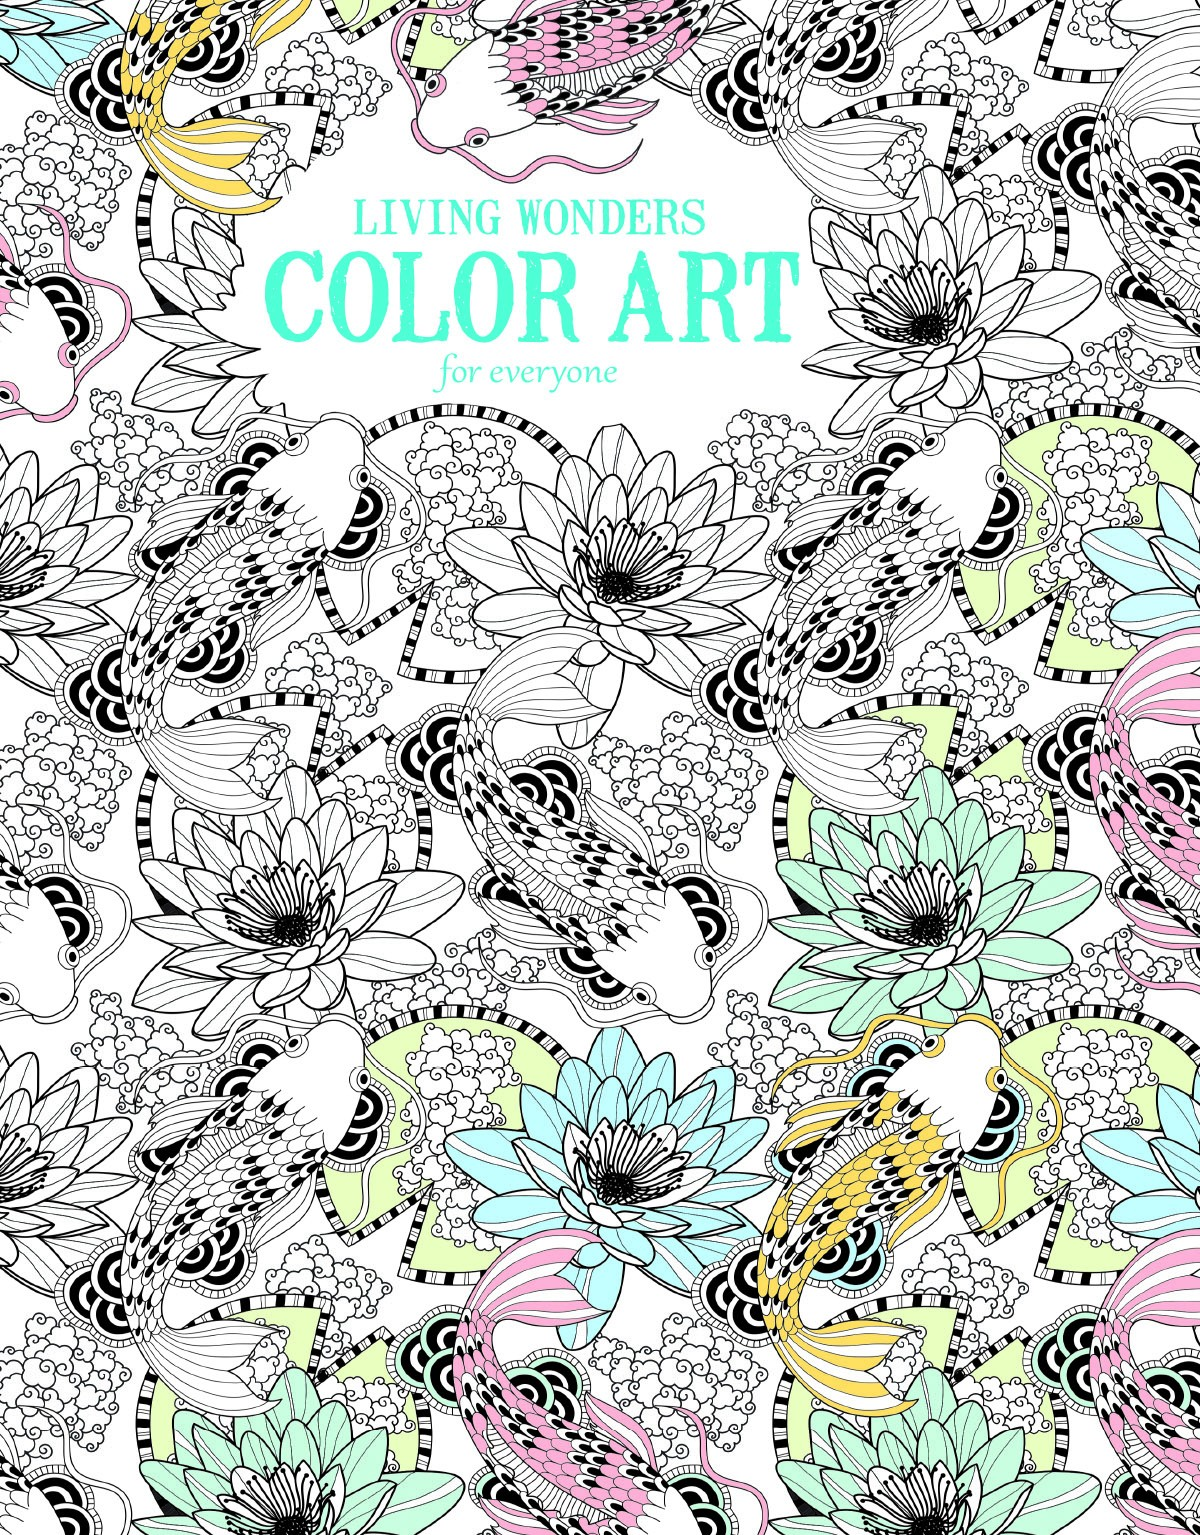 Color art living wonders - We All Have A Little Too Much Stress In Our Life And From The Research I Have Read Coloring Is Apparently Just As Effective As Mediation For Unwinding